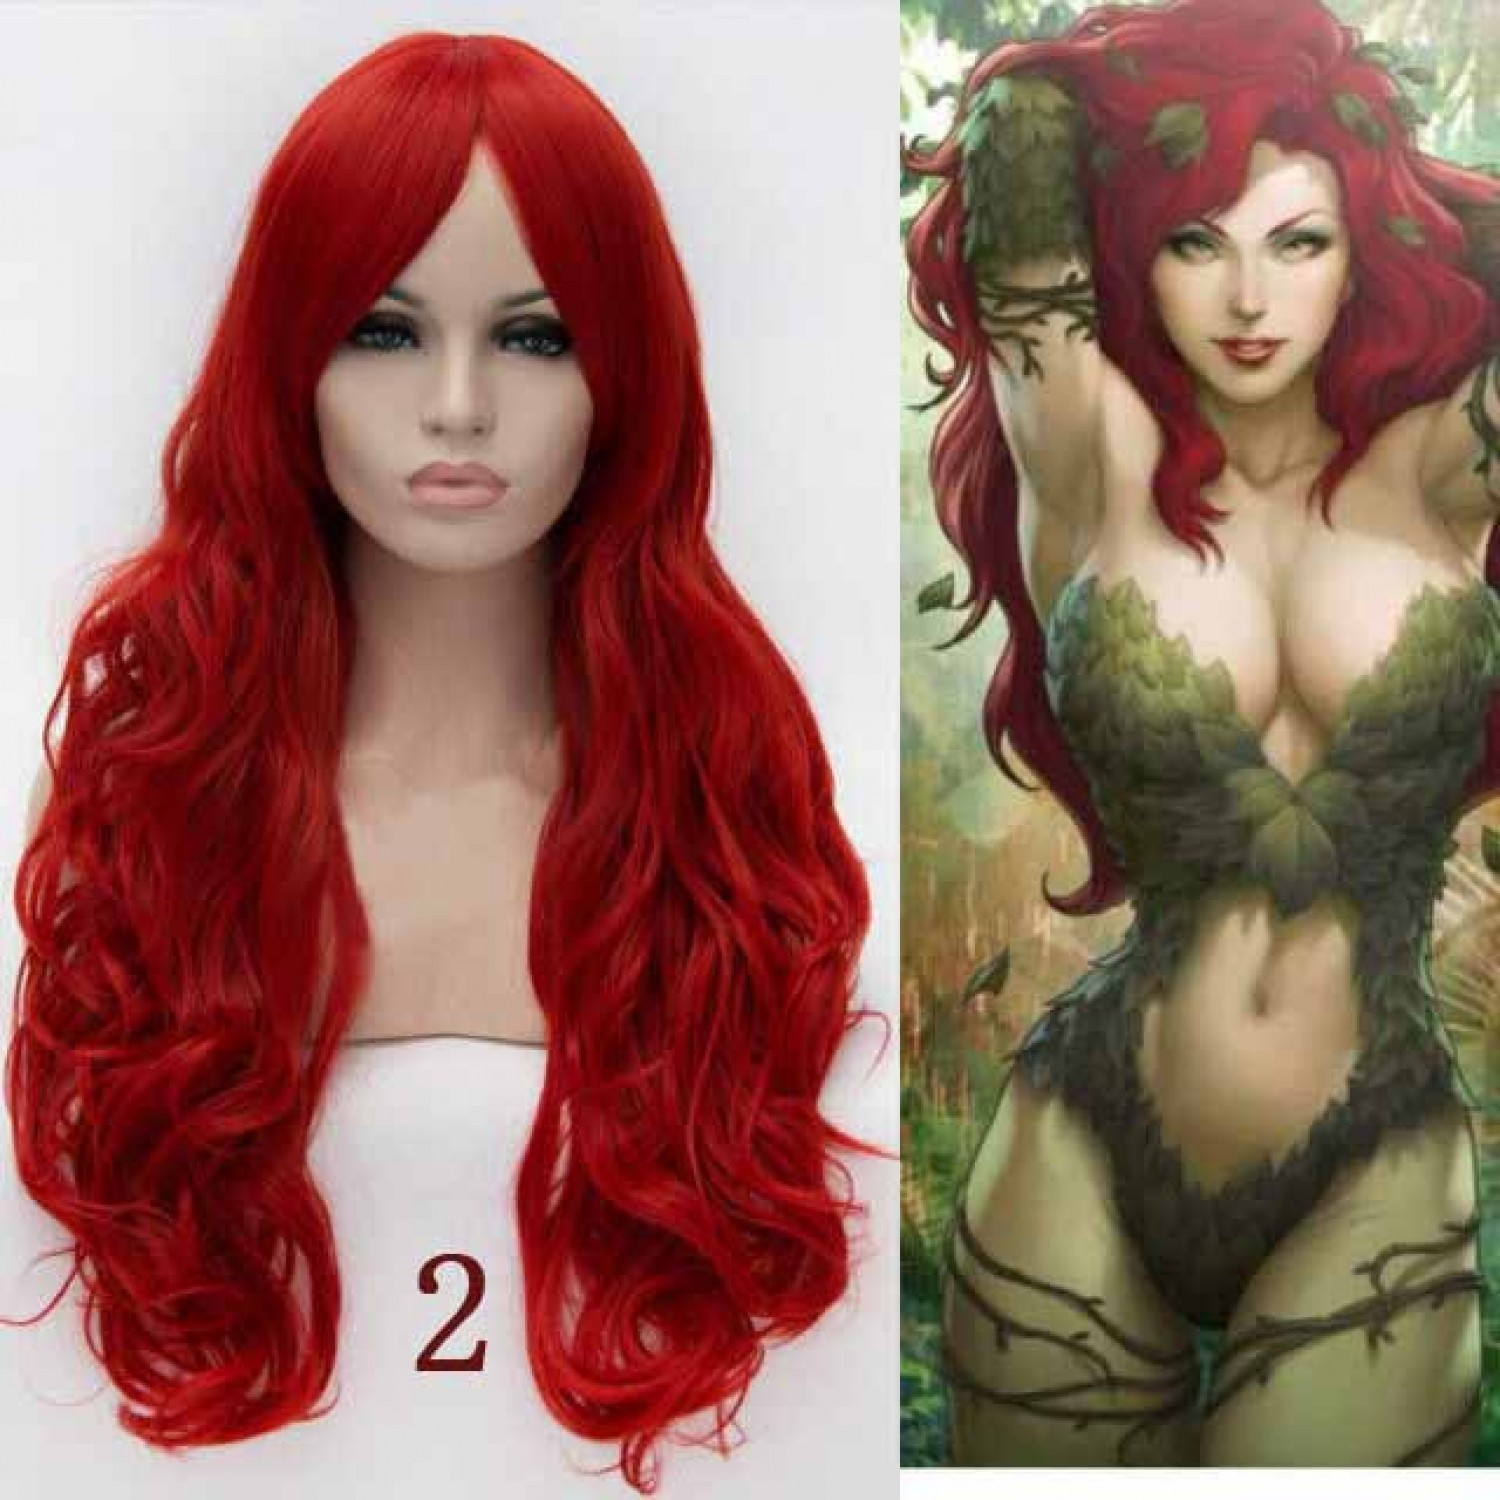 Batman Birds of Prey Poison Ivy Style Cosplay Wig